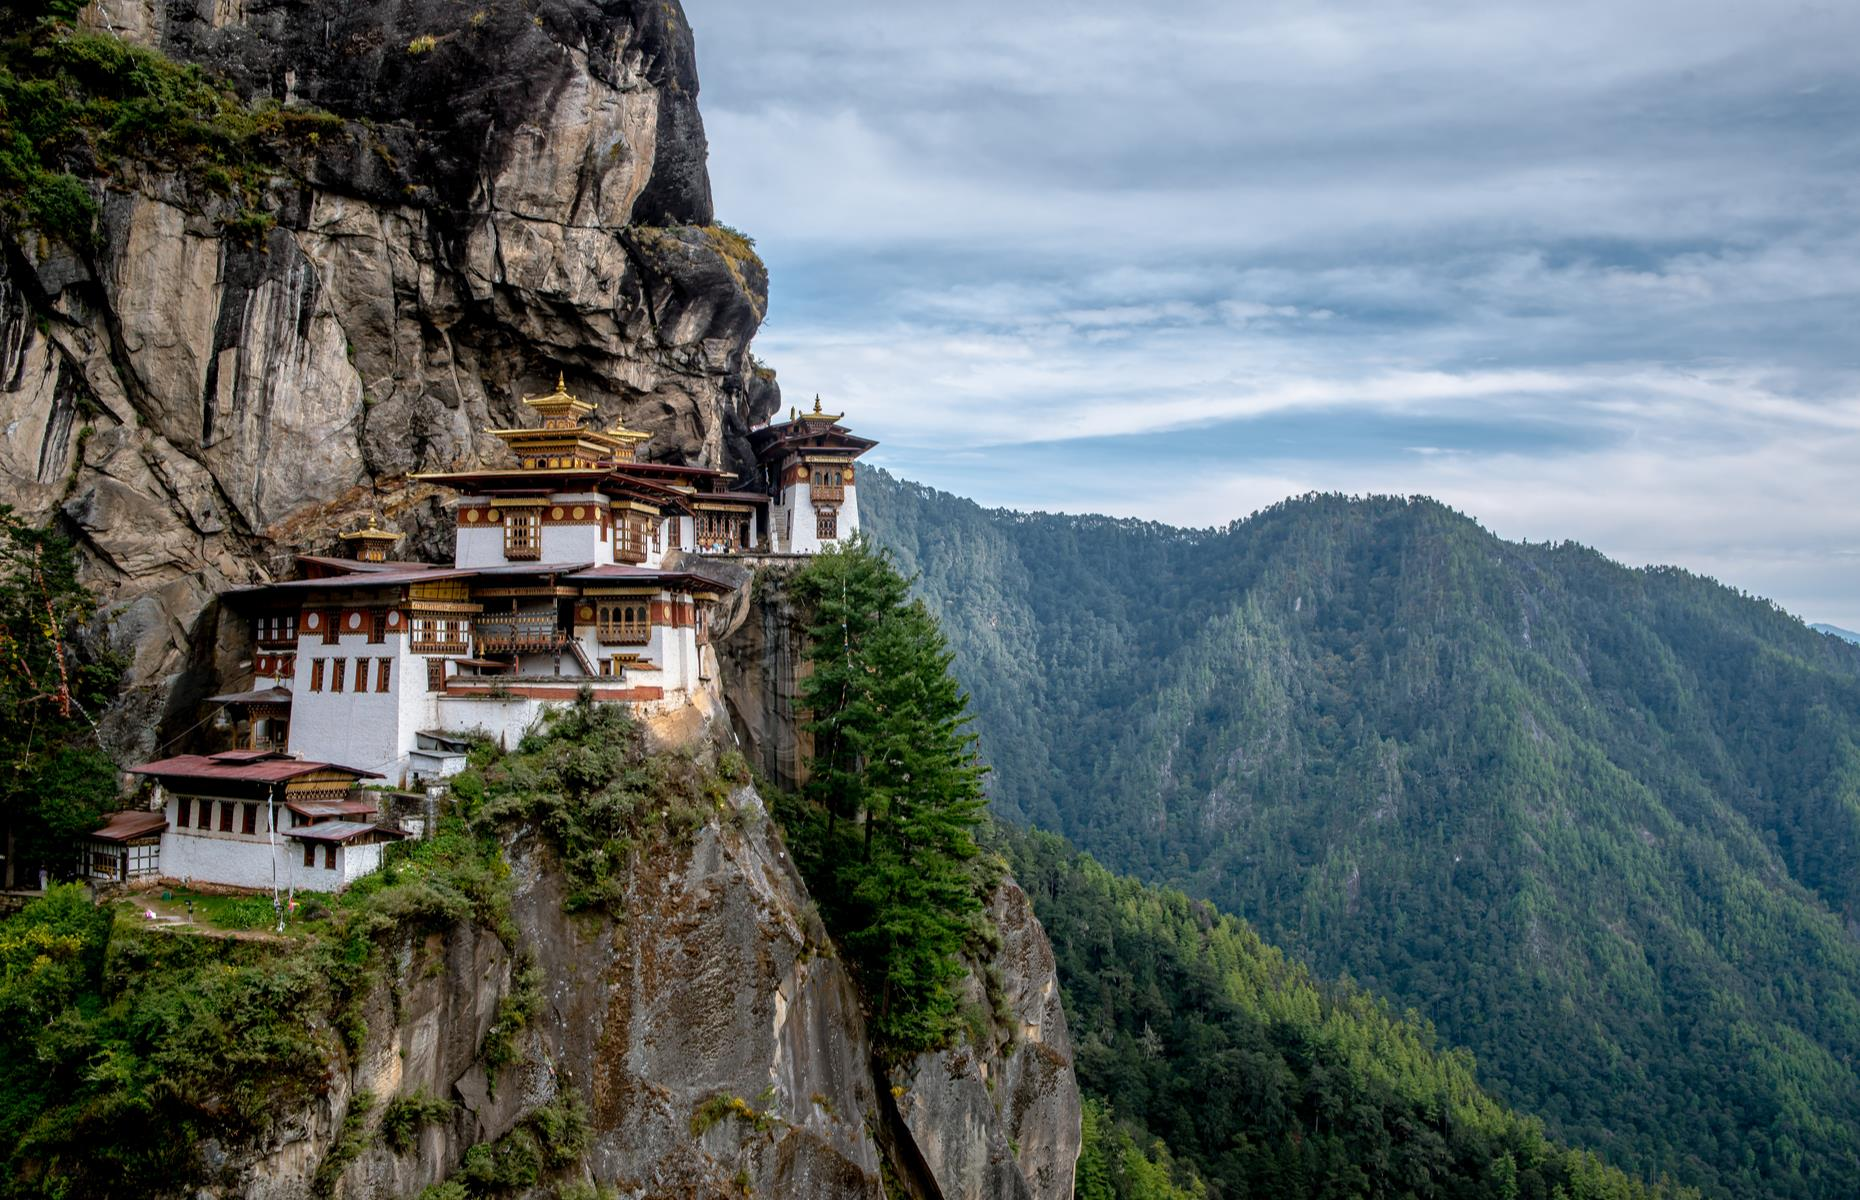 Slide 6 of 31: Clinging to the edge of a cliff with panoramic views over the Paro valley in Bhutan, the Buddhist monastery of Paro Taktsang – also known as Tiger's Nest Temple – is a sight to behold. Built in the 17th century, the sky-high temple rises a perilous 9,843 feet (3,000m) above the valley floor.